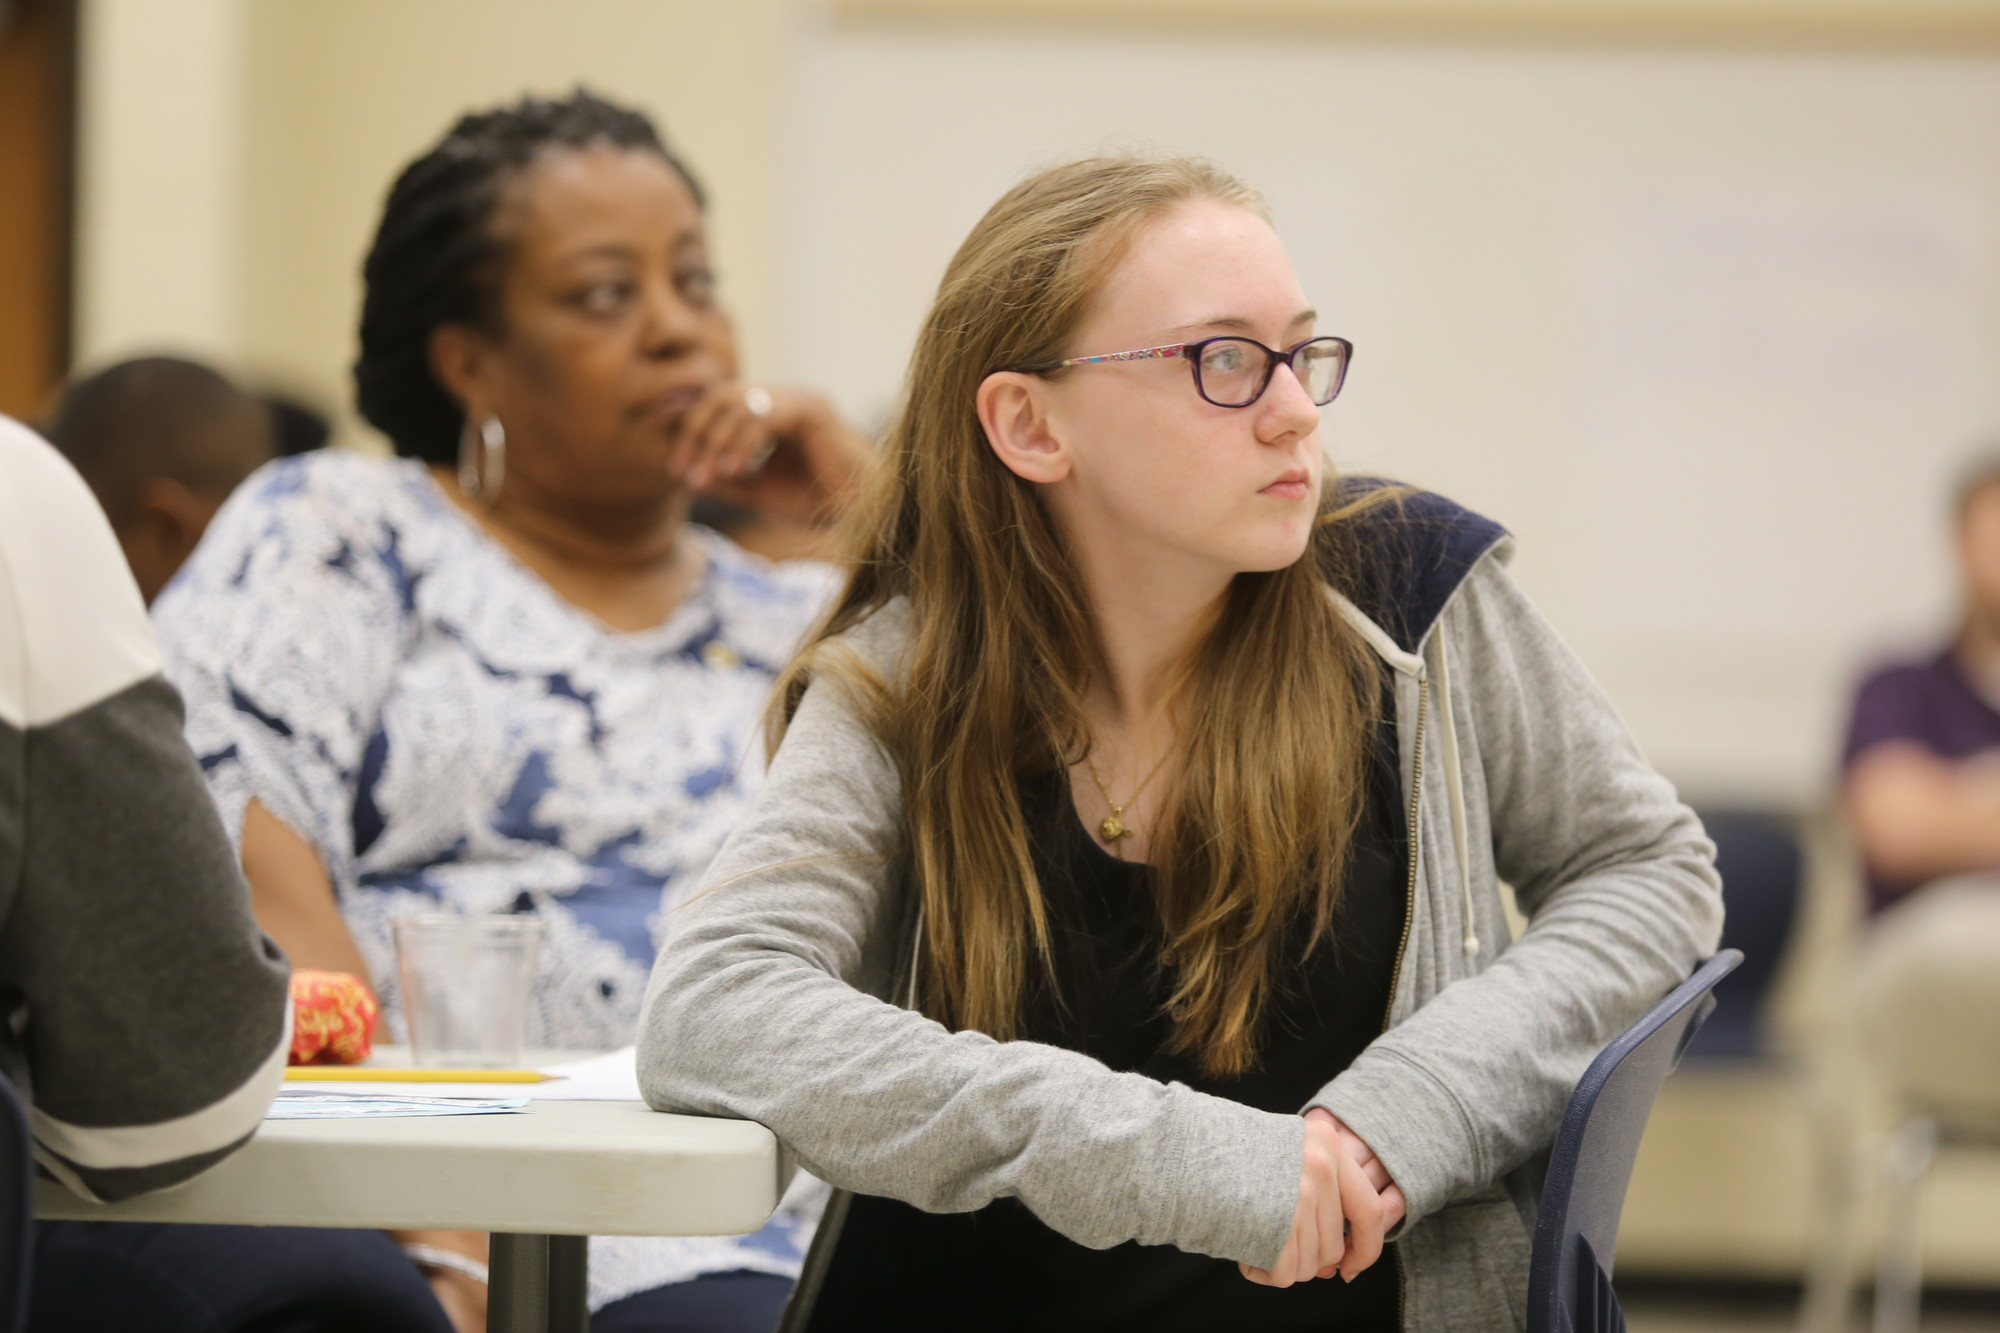 Bates Middle School student Andreanna McAlister listens Wednesday to discussion on social media as adult volunteer Tracey Johnson looks on in the background. The two are participants in the school's intergenerational program this year.